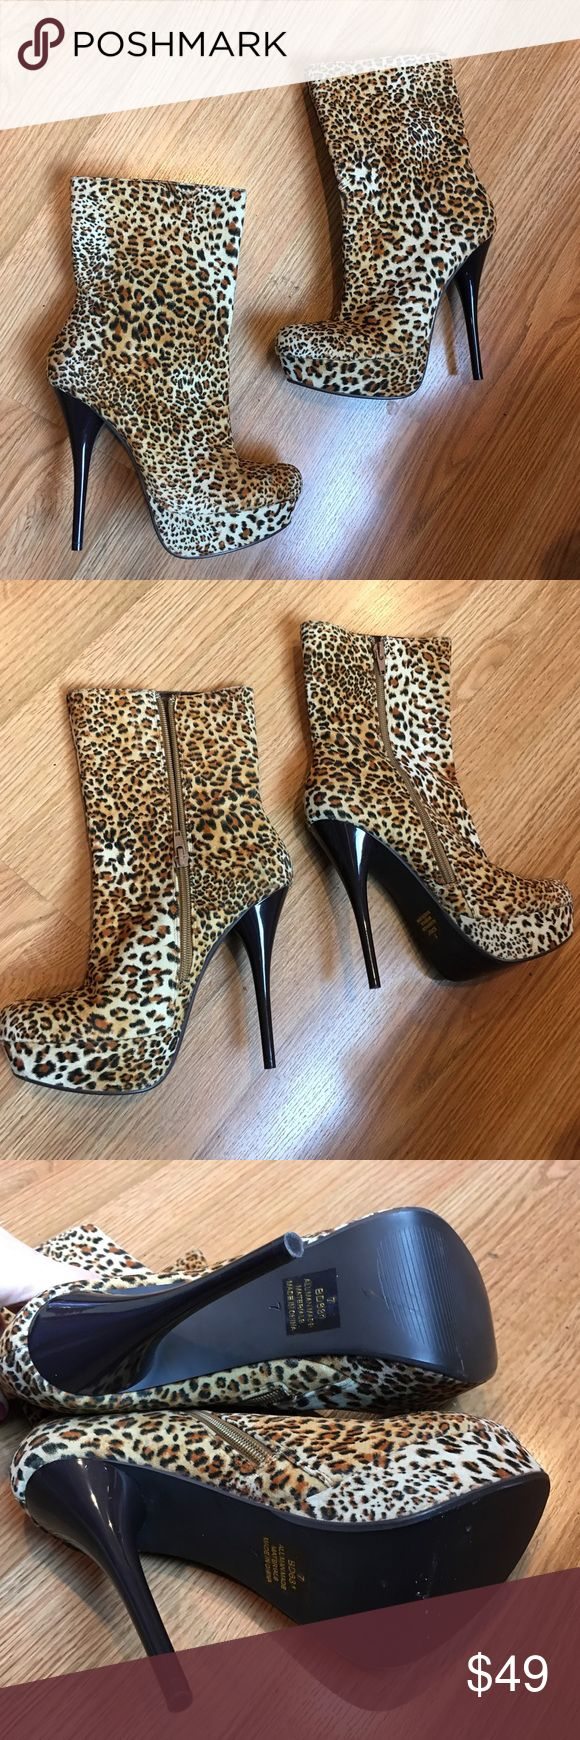 Gorgeous platform leopard heel boots 🐯 New, never before worn platform leopard heeled boots! 😍 absolutely gorgeous style Shoes Ankle Boots & Booties